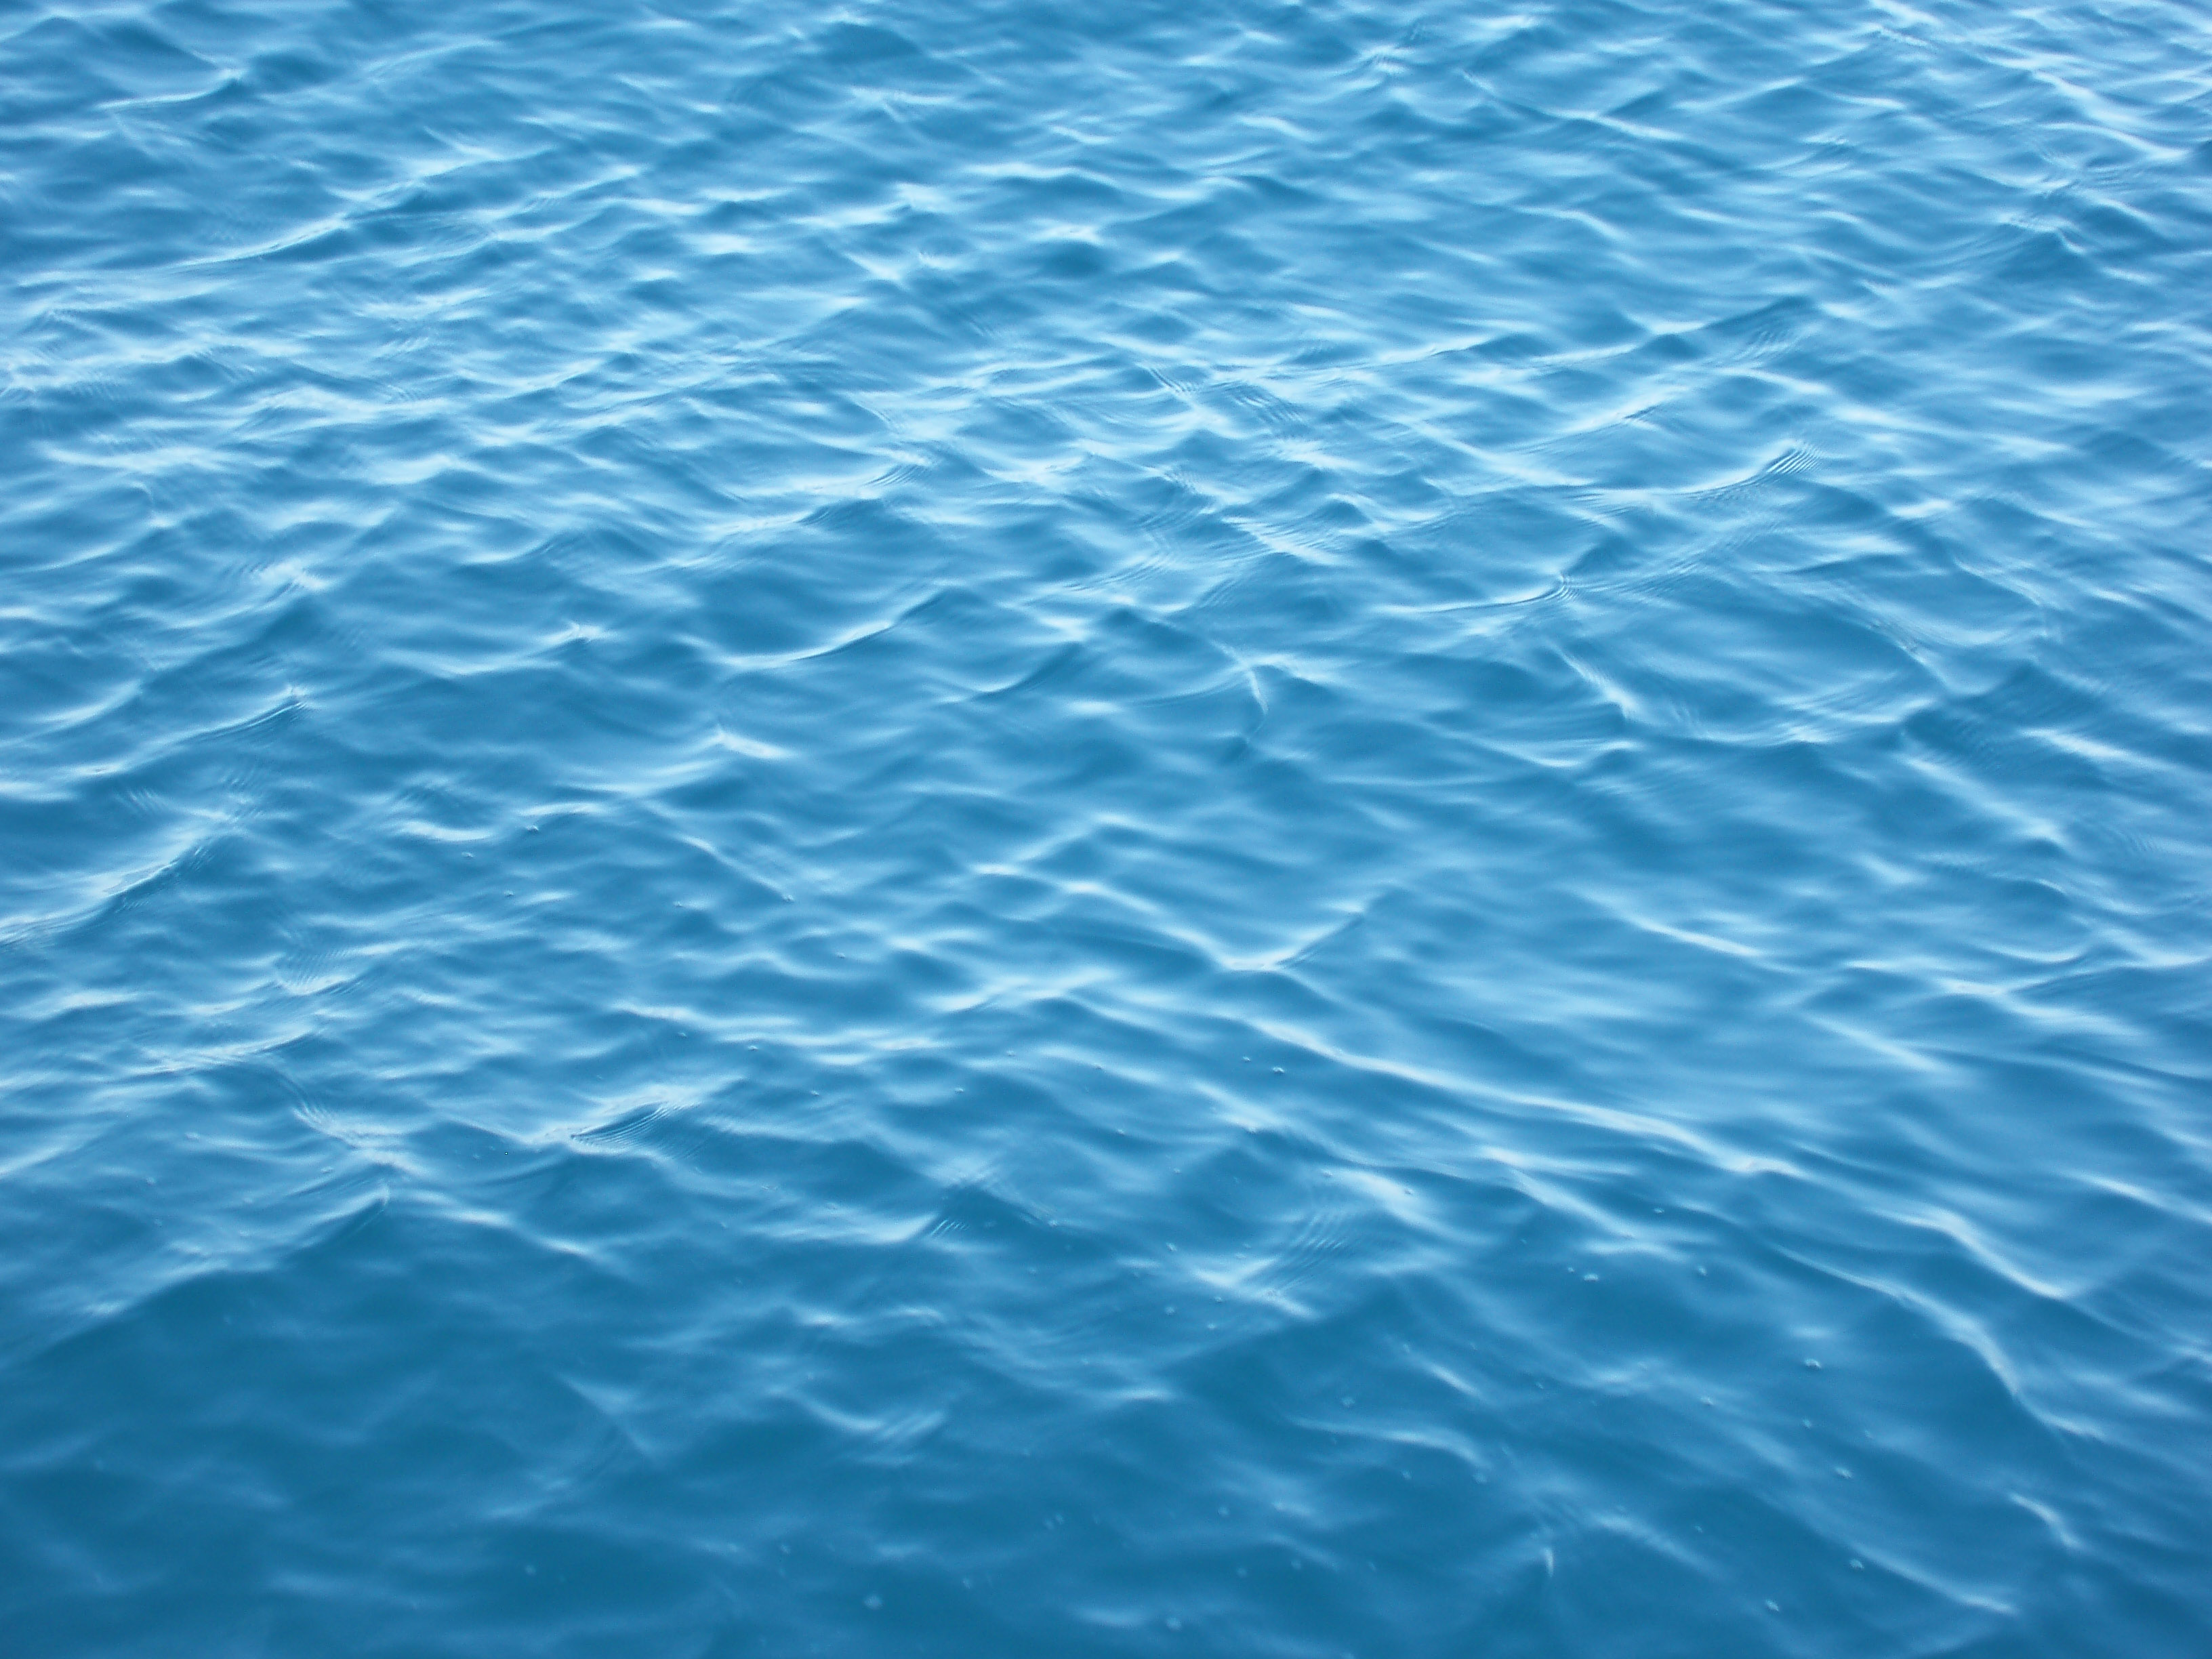 smooth water ripples